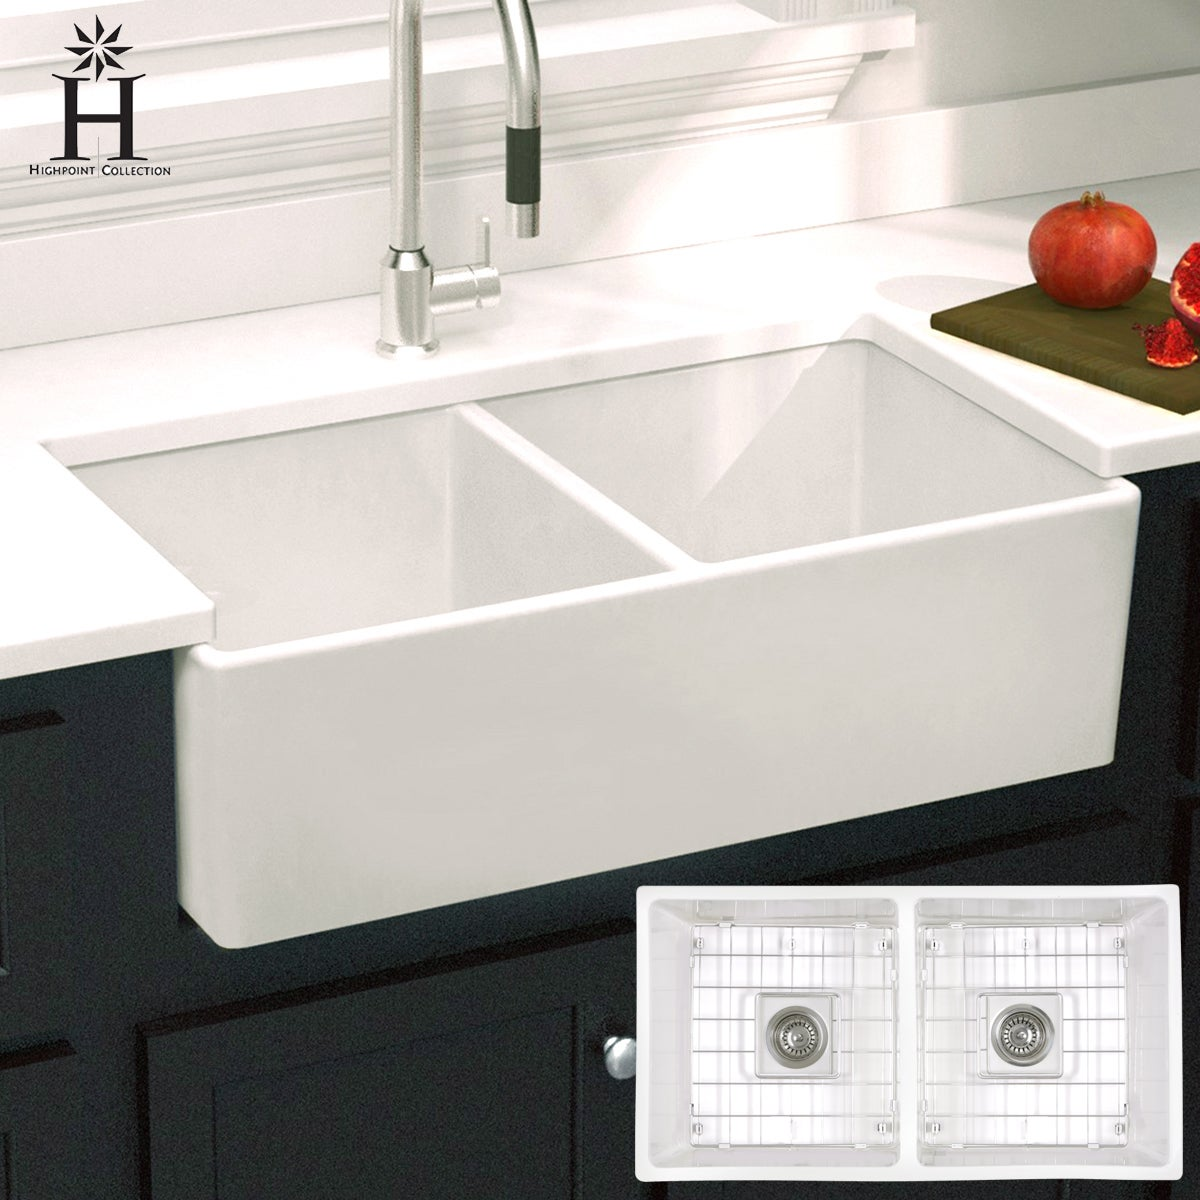 Highpoint Collection Double Bowl Fireclay Farmhouse Sink 33 X 18 10